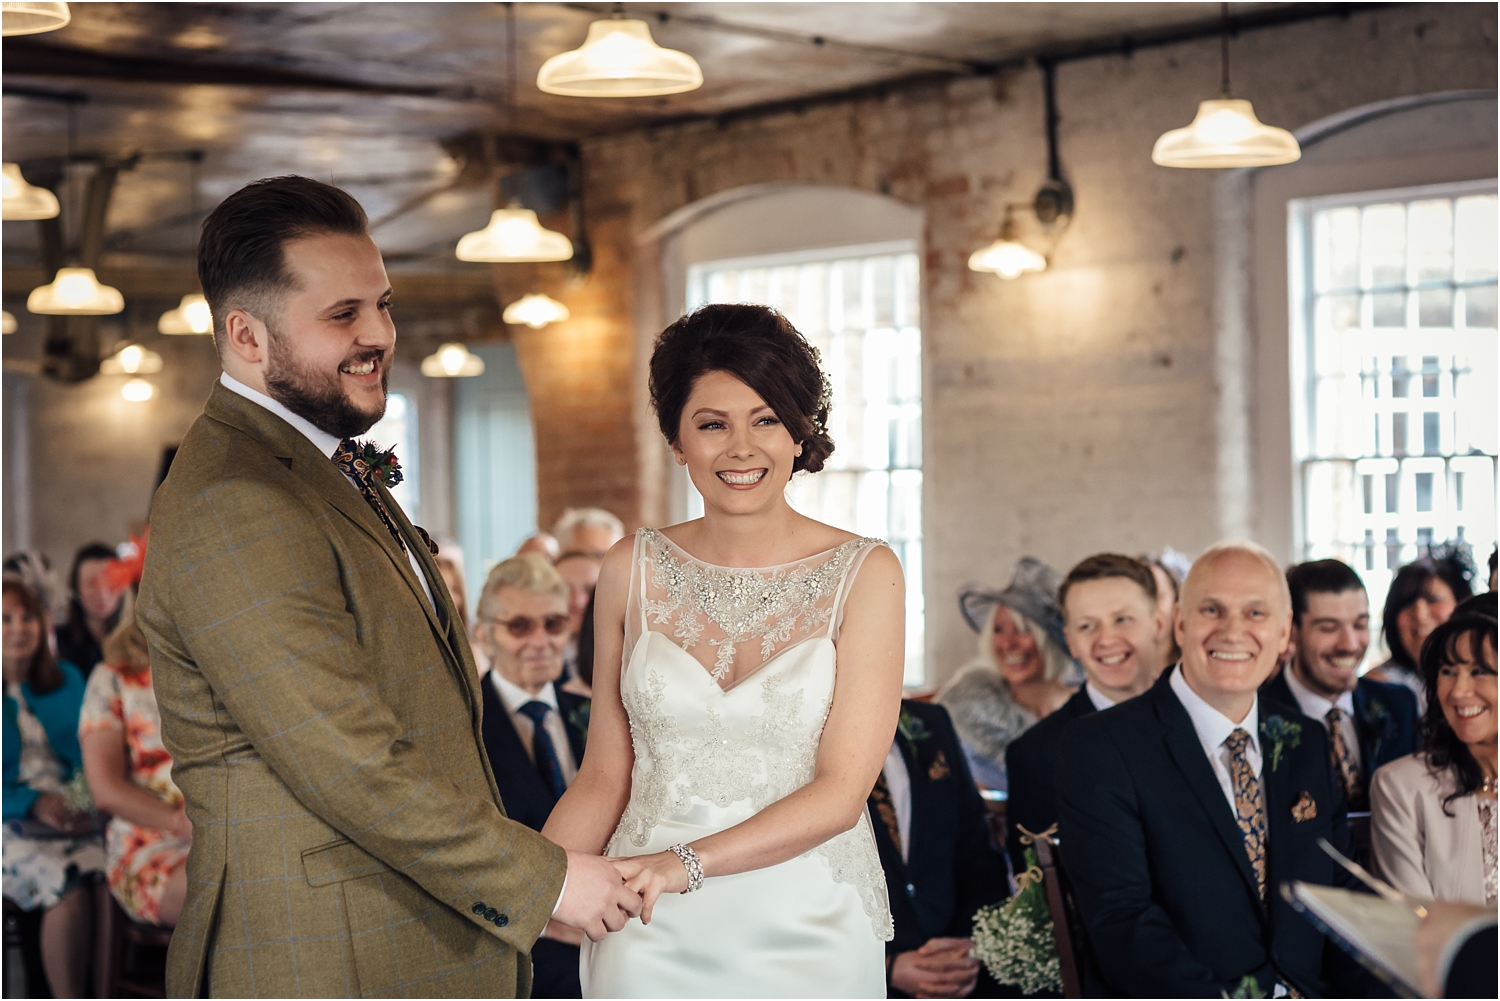 Victoria-Ben-The-West-Mill-darley-abbey-natural-relaxed-documentary-wedding-photography-photographer-Derby-Nottingham-Derbyshire-Nottinghamshire-Leicestershire-Lincolnshire-East-Midlands_0053.jpg